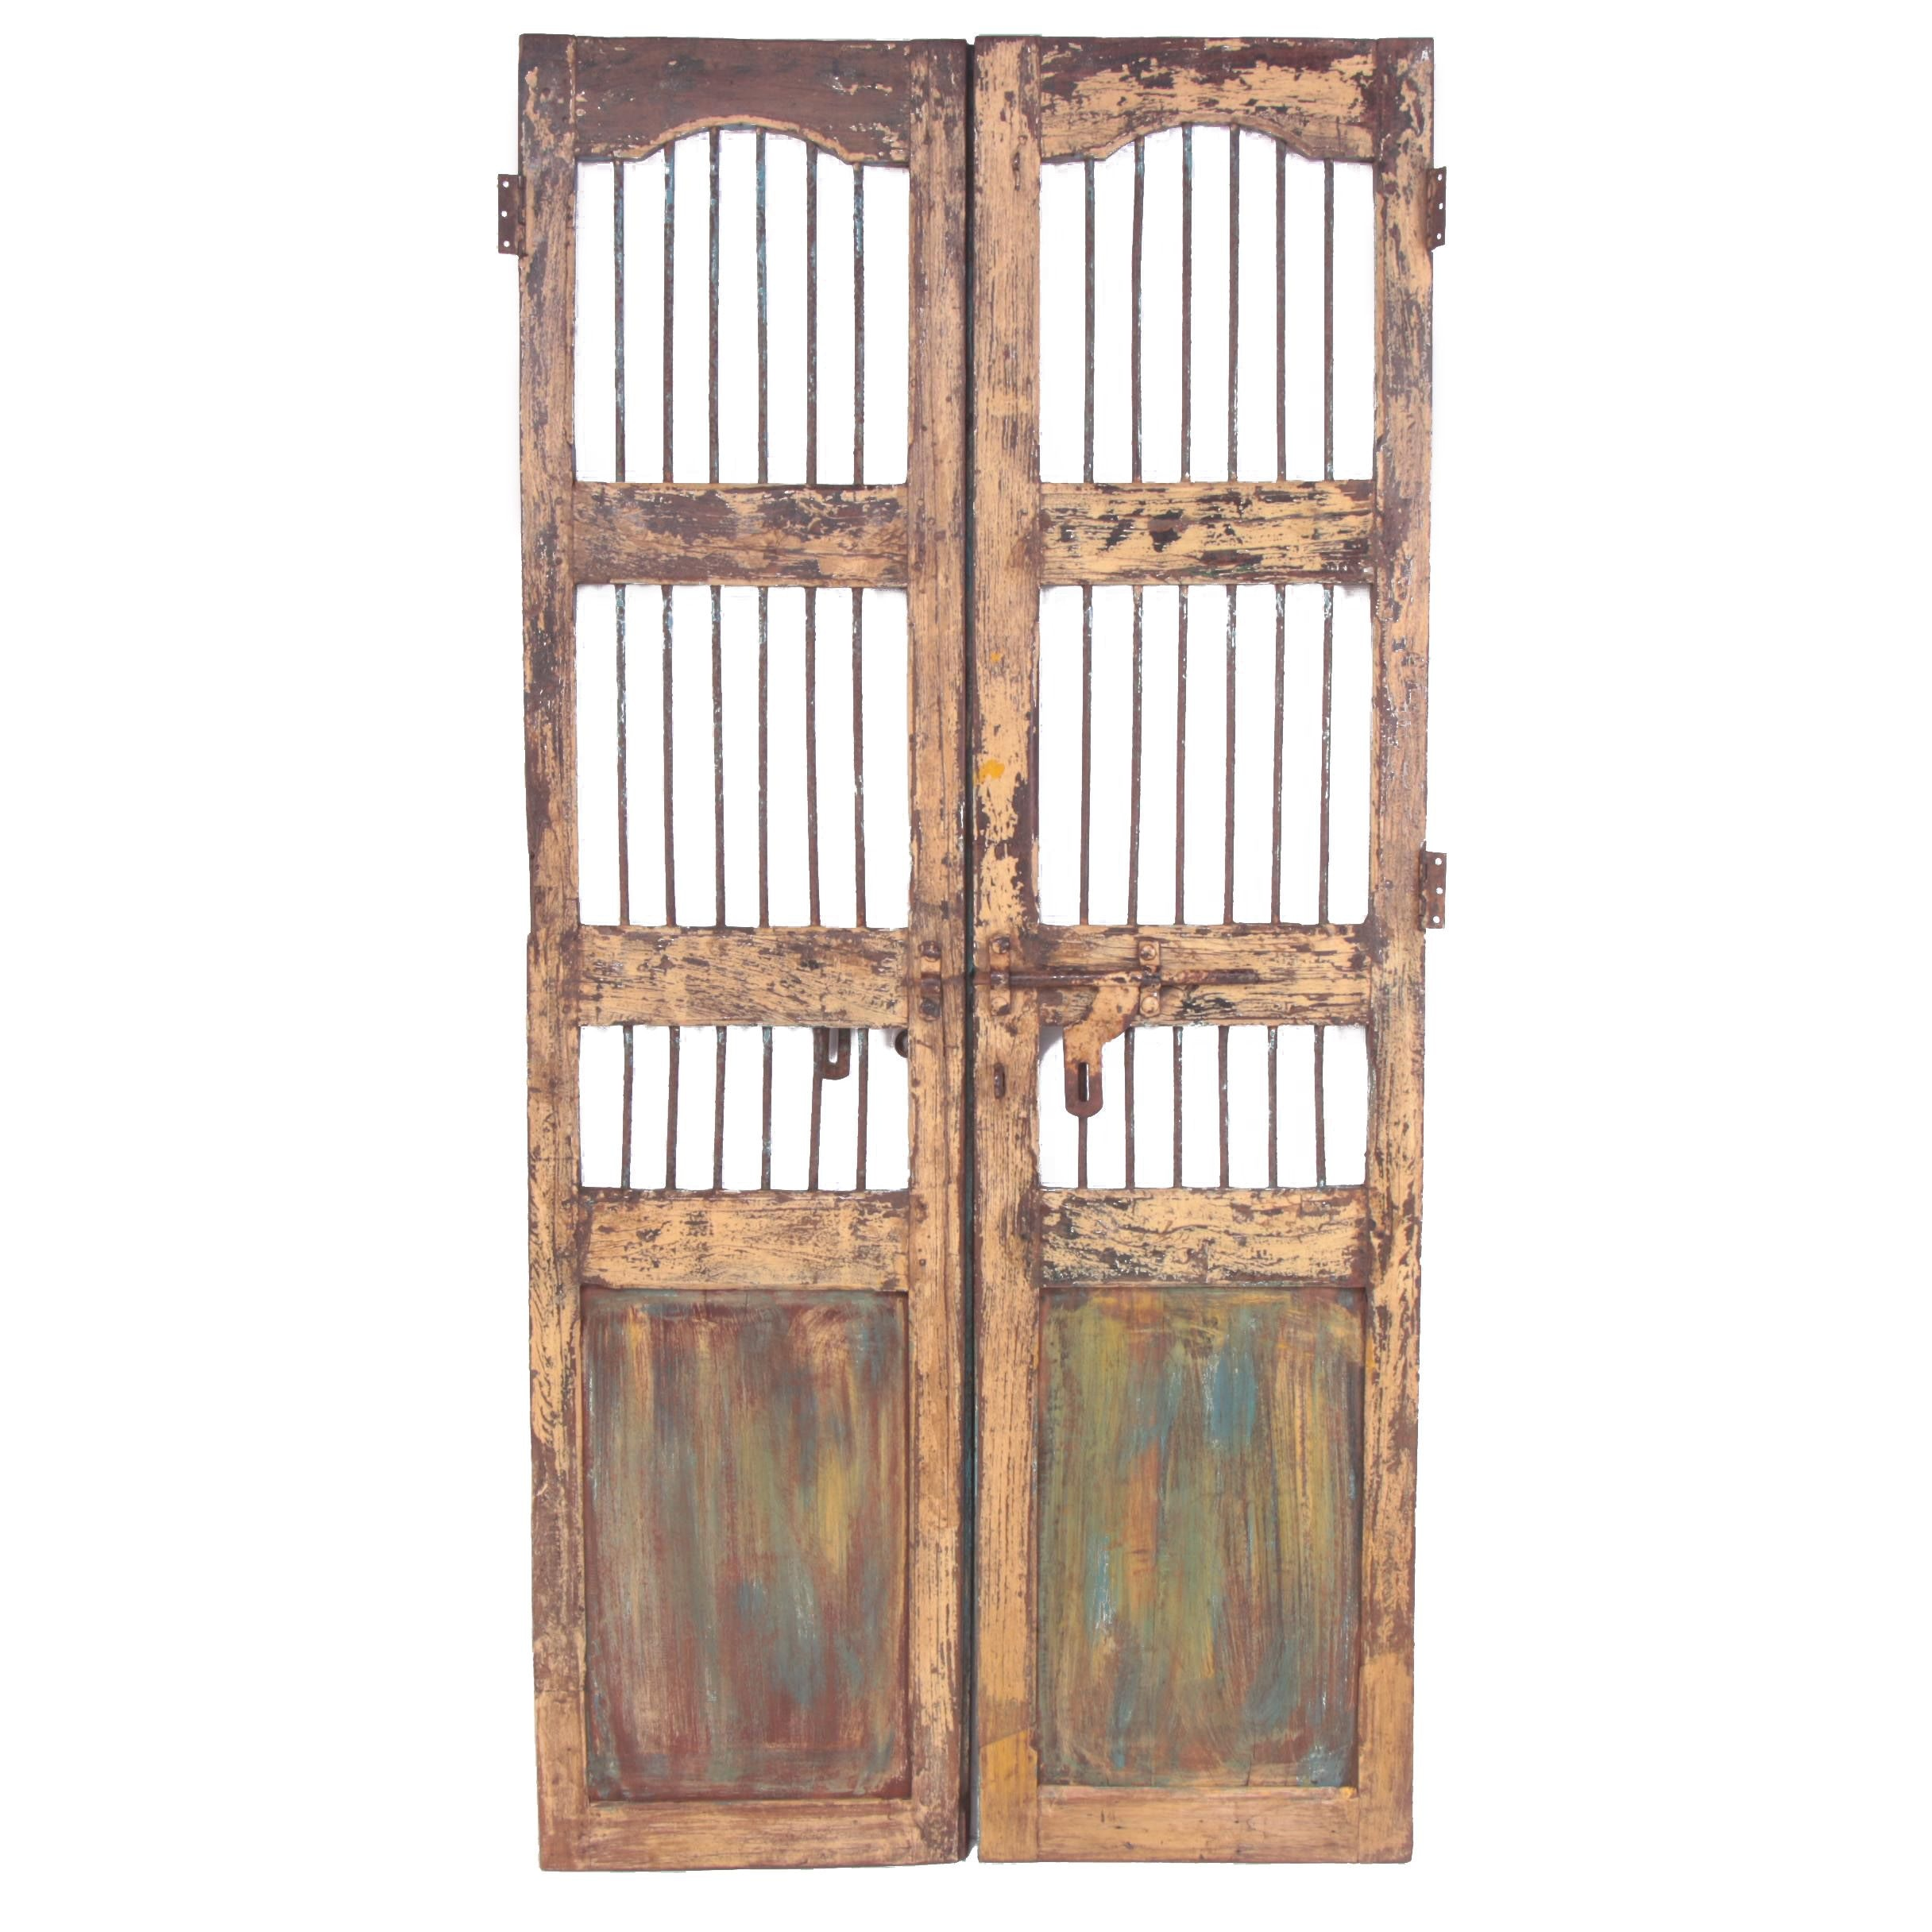 Reclaimed Indian Hardwood French Doors with Iron Security Bars, 20th Century